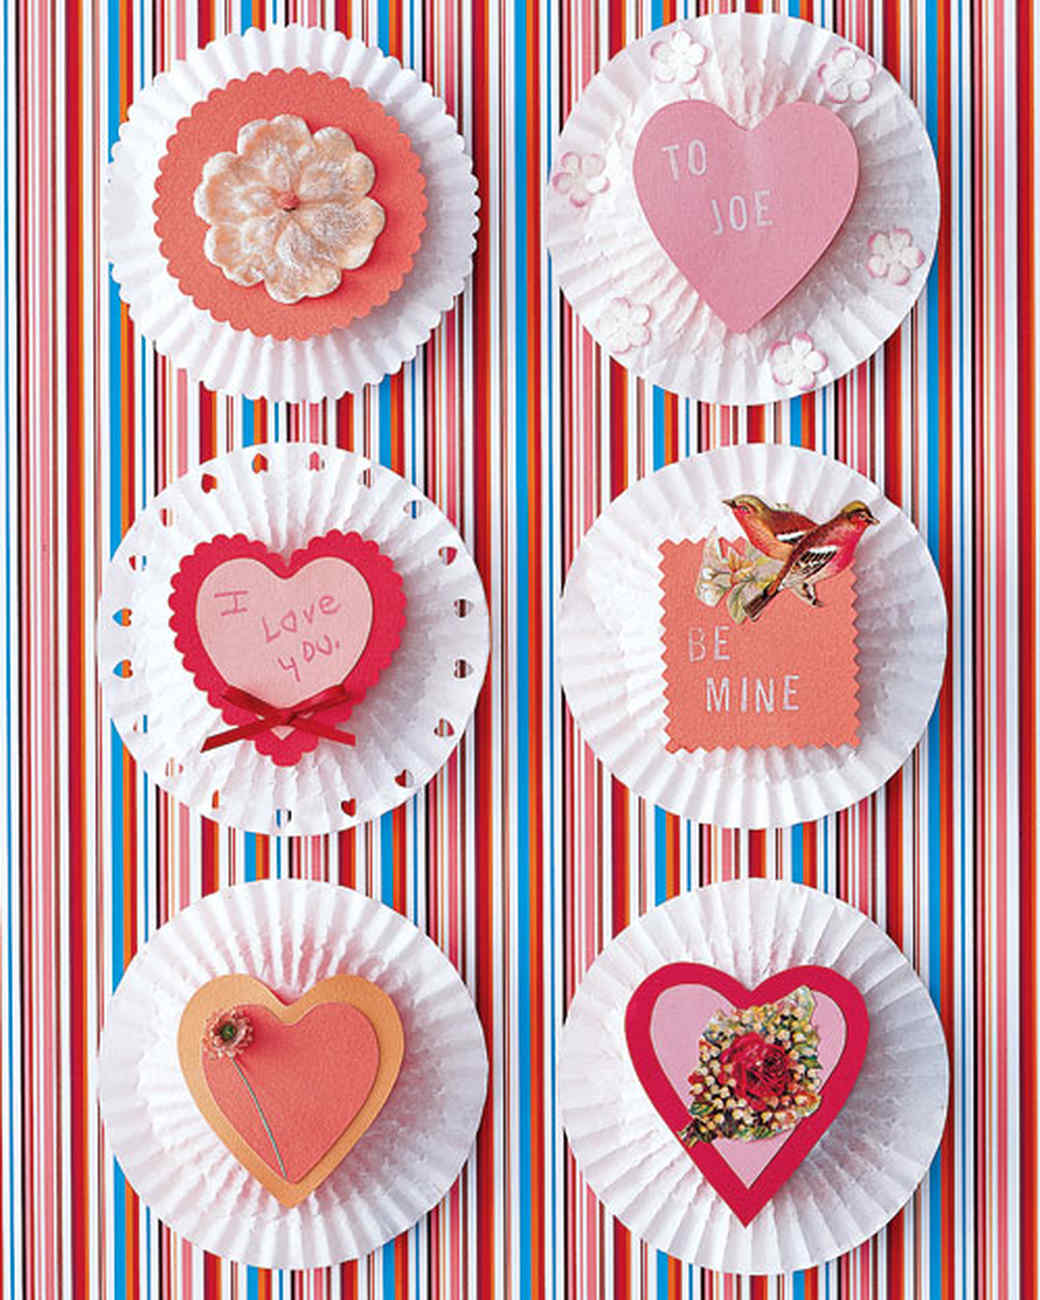 Handmade Valentines for Kids: Cupcake Goodies